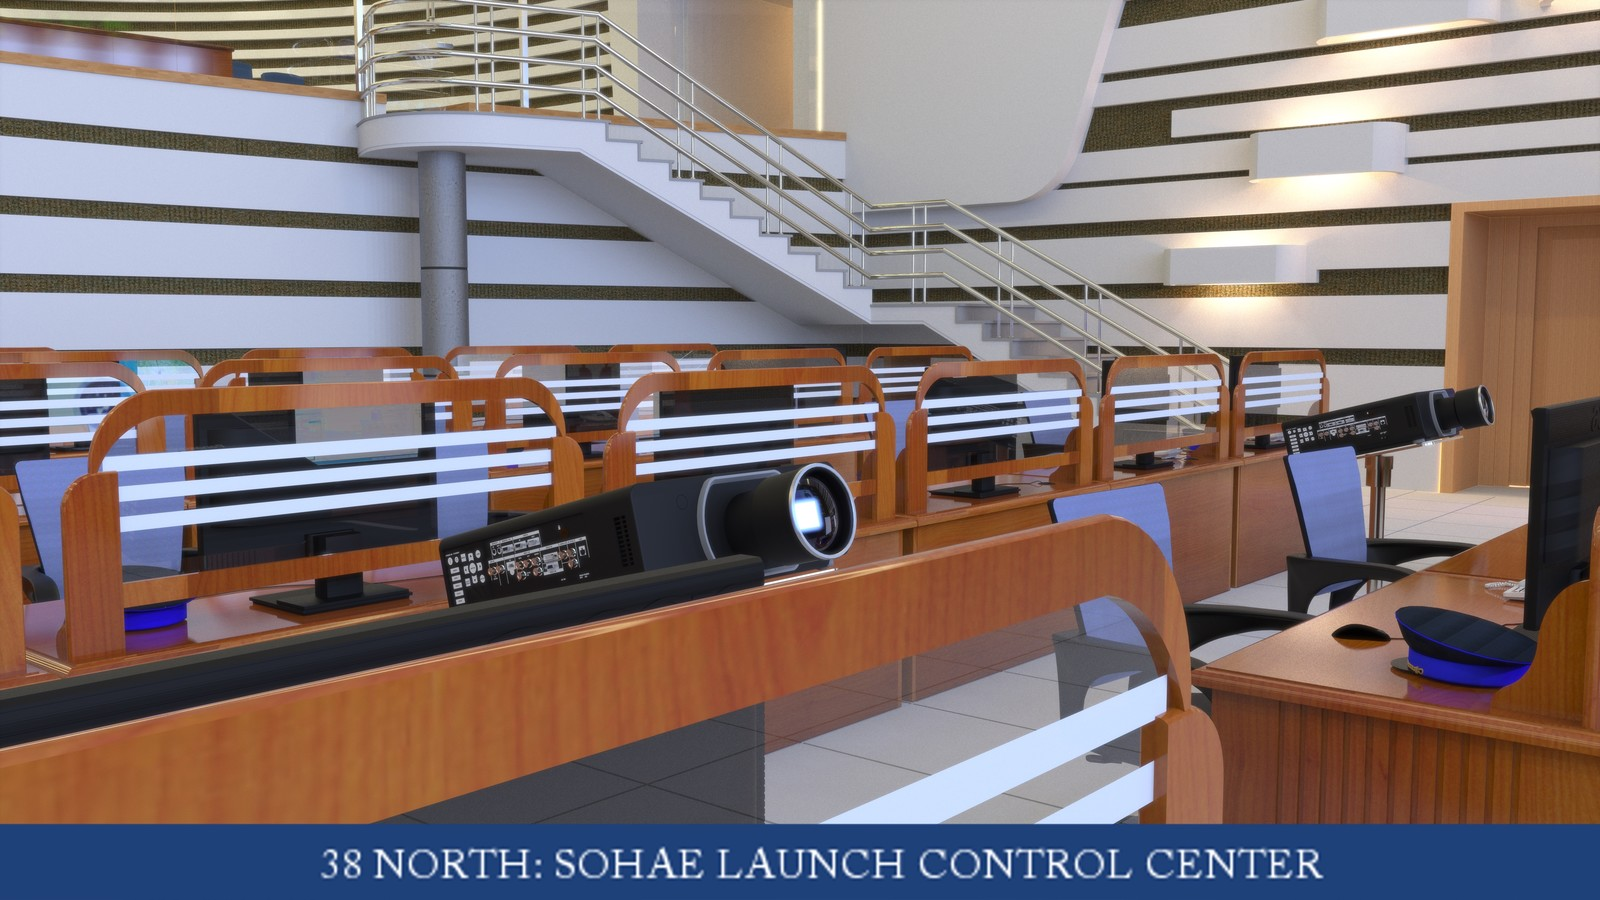 Sohae Satellite Launching Station's Launch for 38 North Control Room 01 Model by Nathan J Hunt/Edited & Rendered by Duane Kemp Project for 38North  Read the story here: http://www.kemppro.com/KP-3D-Sohae-Launch-Control-Room-WIRED-Magazine.html